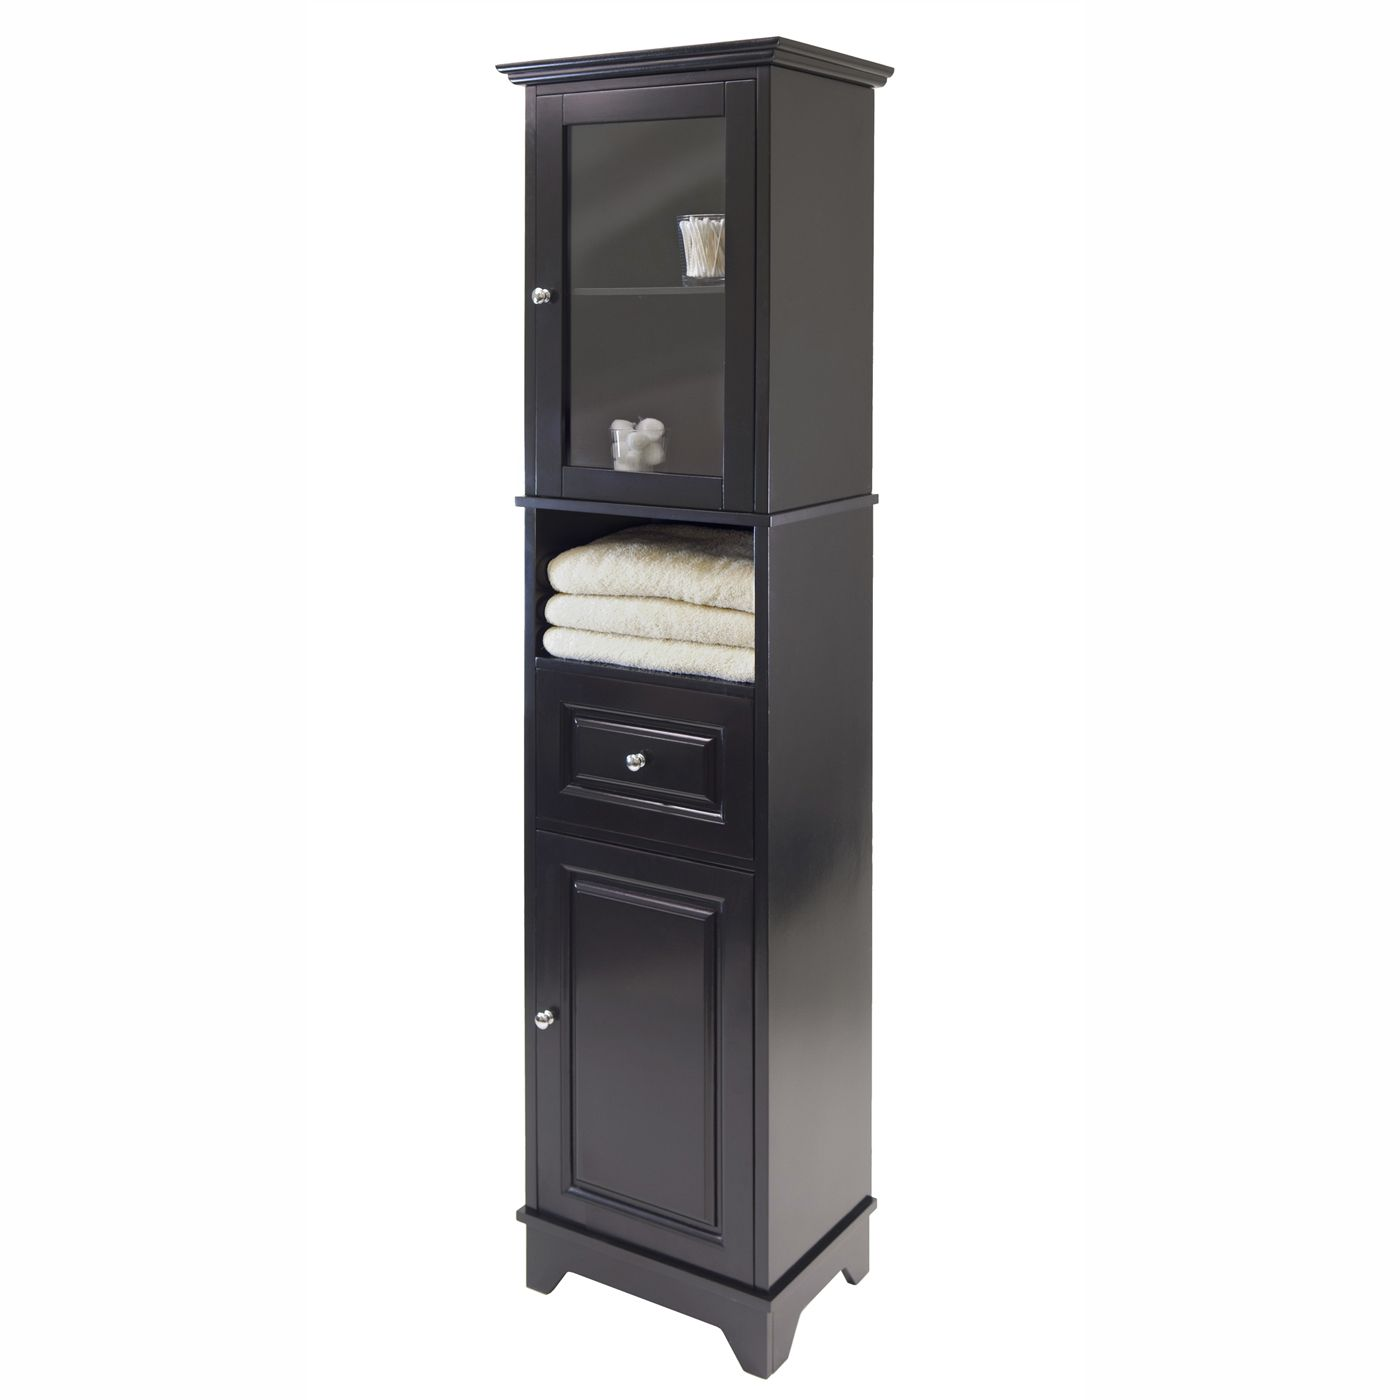 Bon Shop Winsome Wood 20871 Alps Tall Decorative Storage Cabinet, Black At  Loweu0027s Canada. Find Our Selection Of Cabinets U0026 Stackable Cubes At The  Lowest Price ...